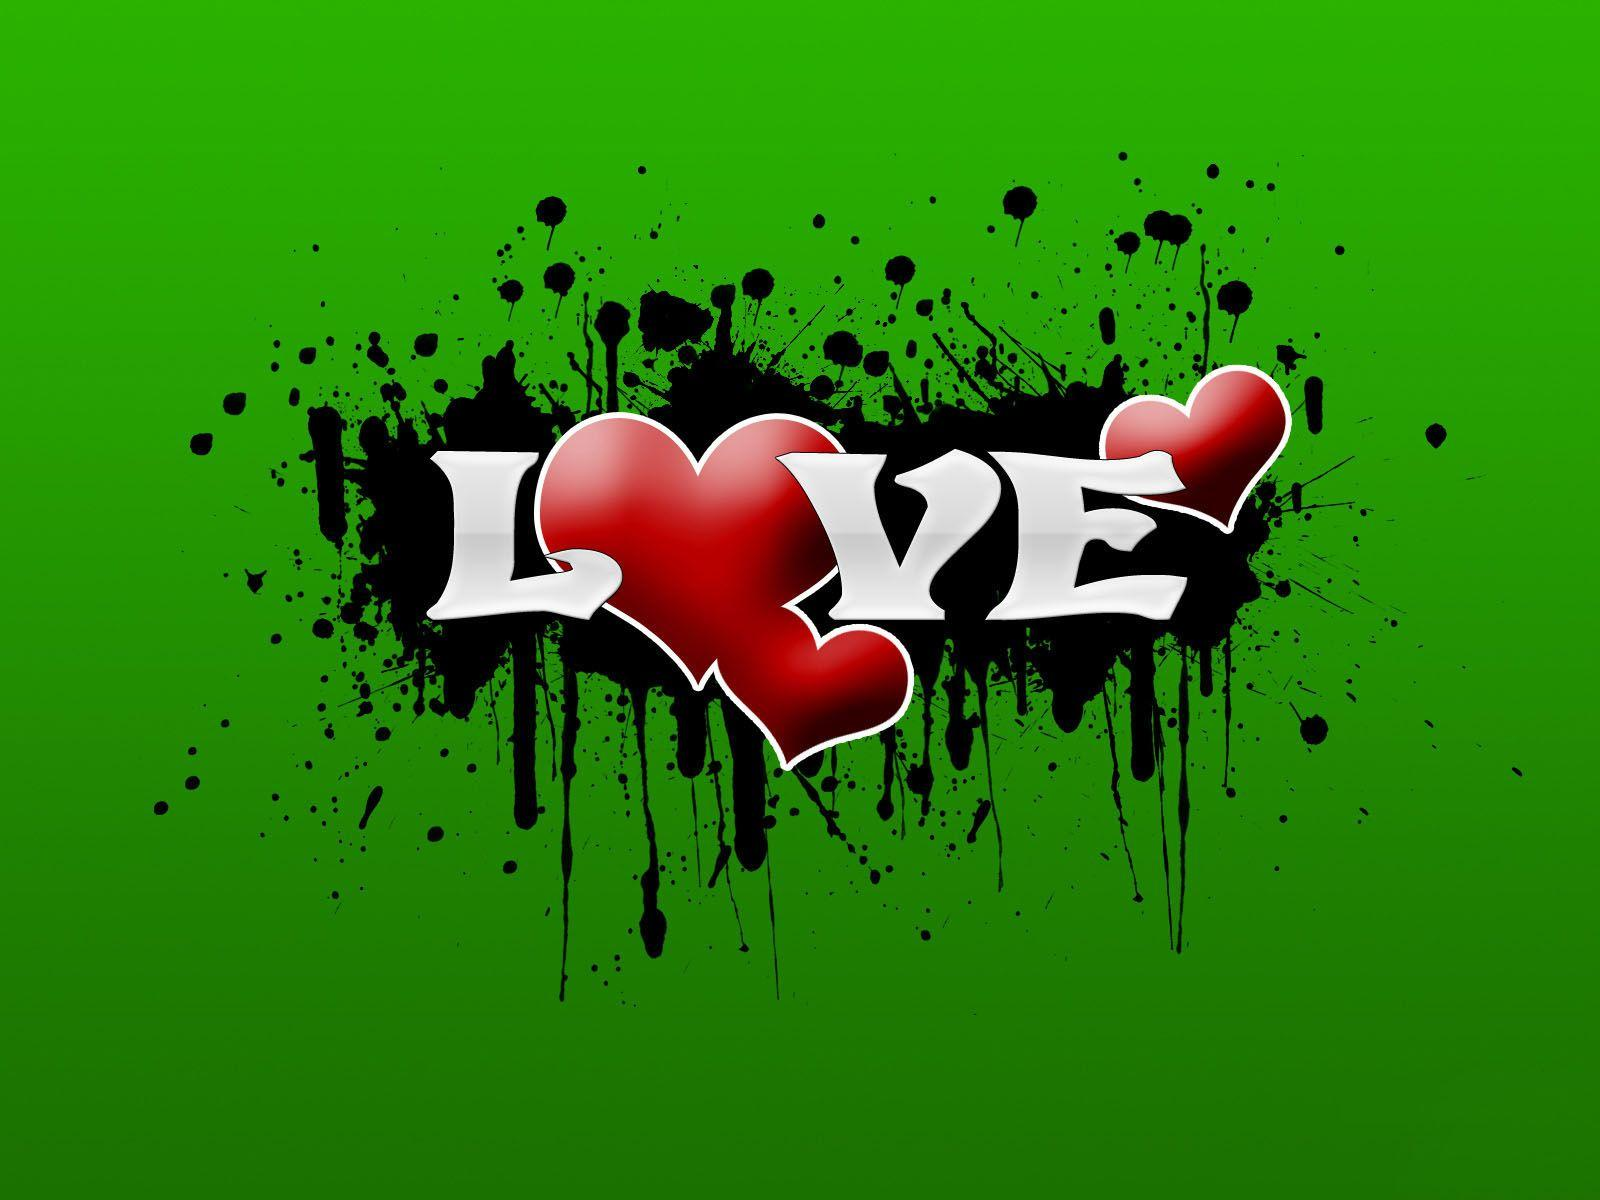 Love Ke Wallpaper : Love Wallpapers 3D - Wallpaper cave